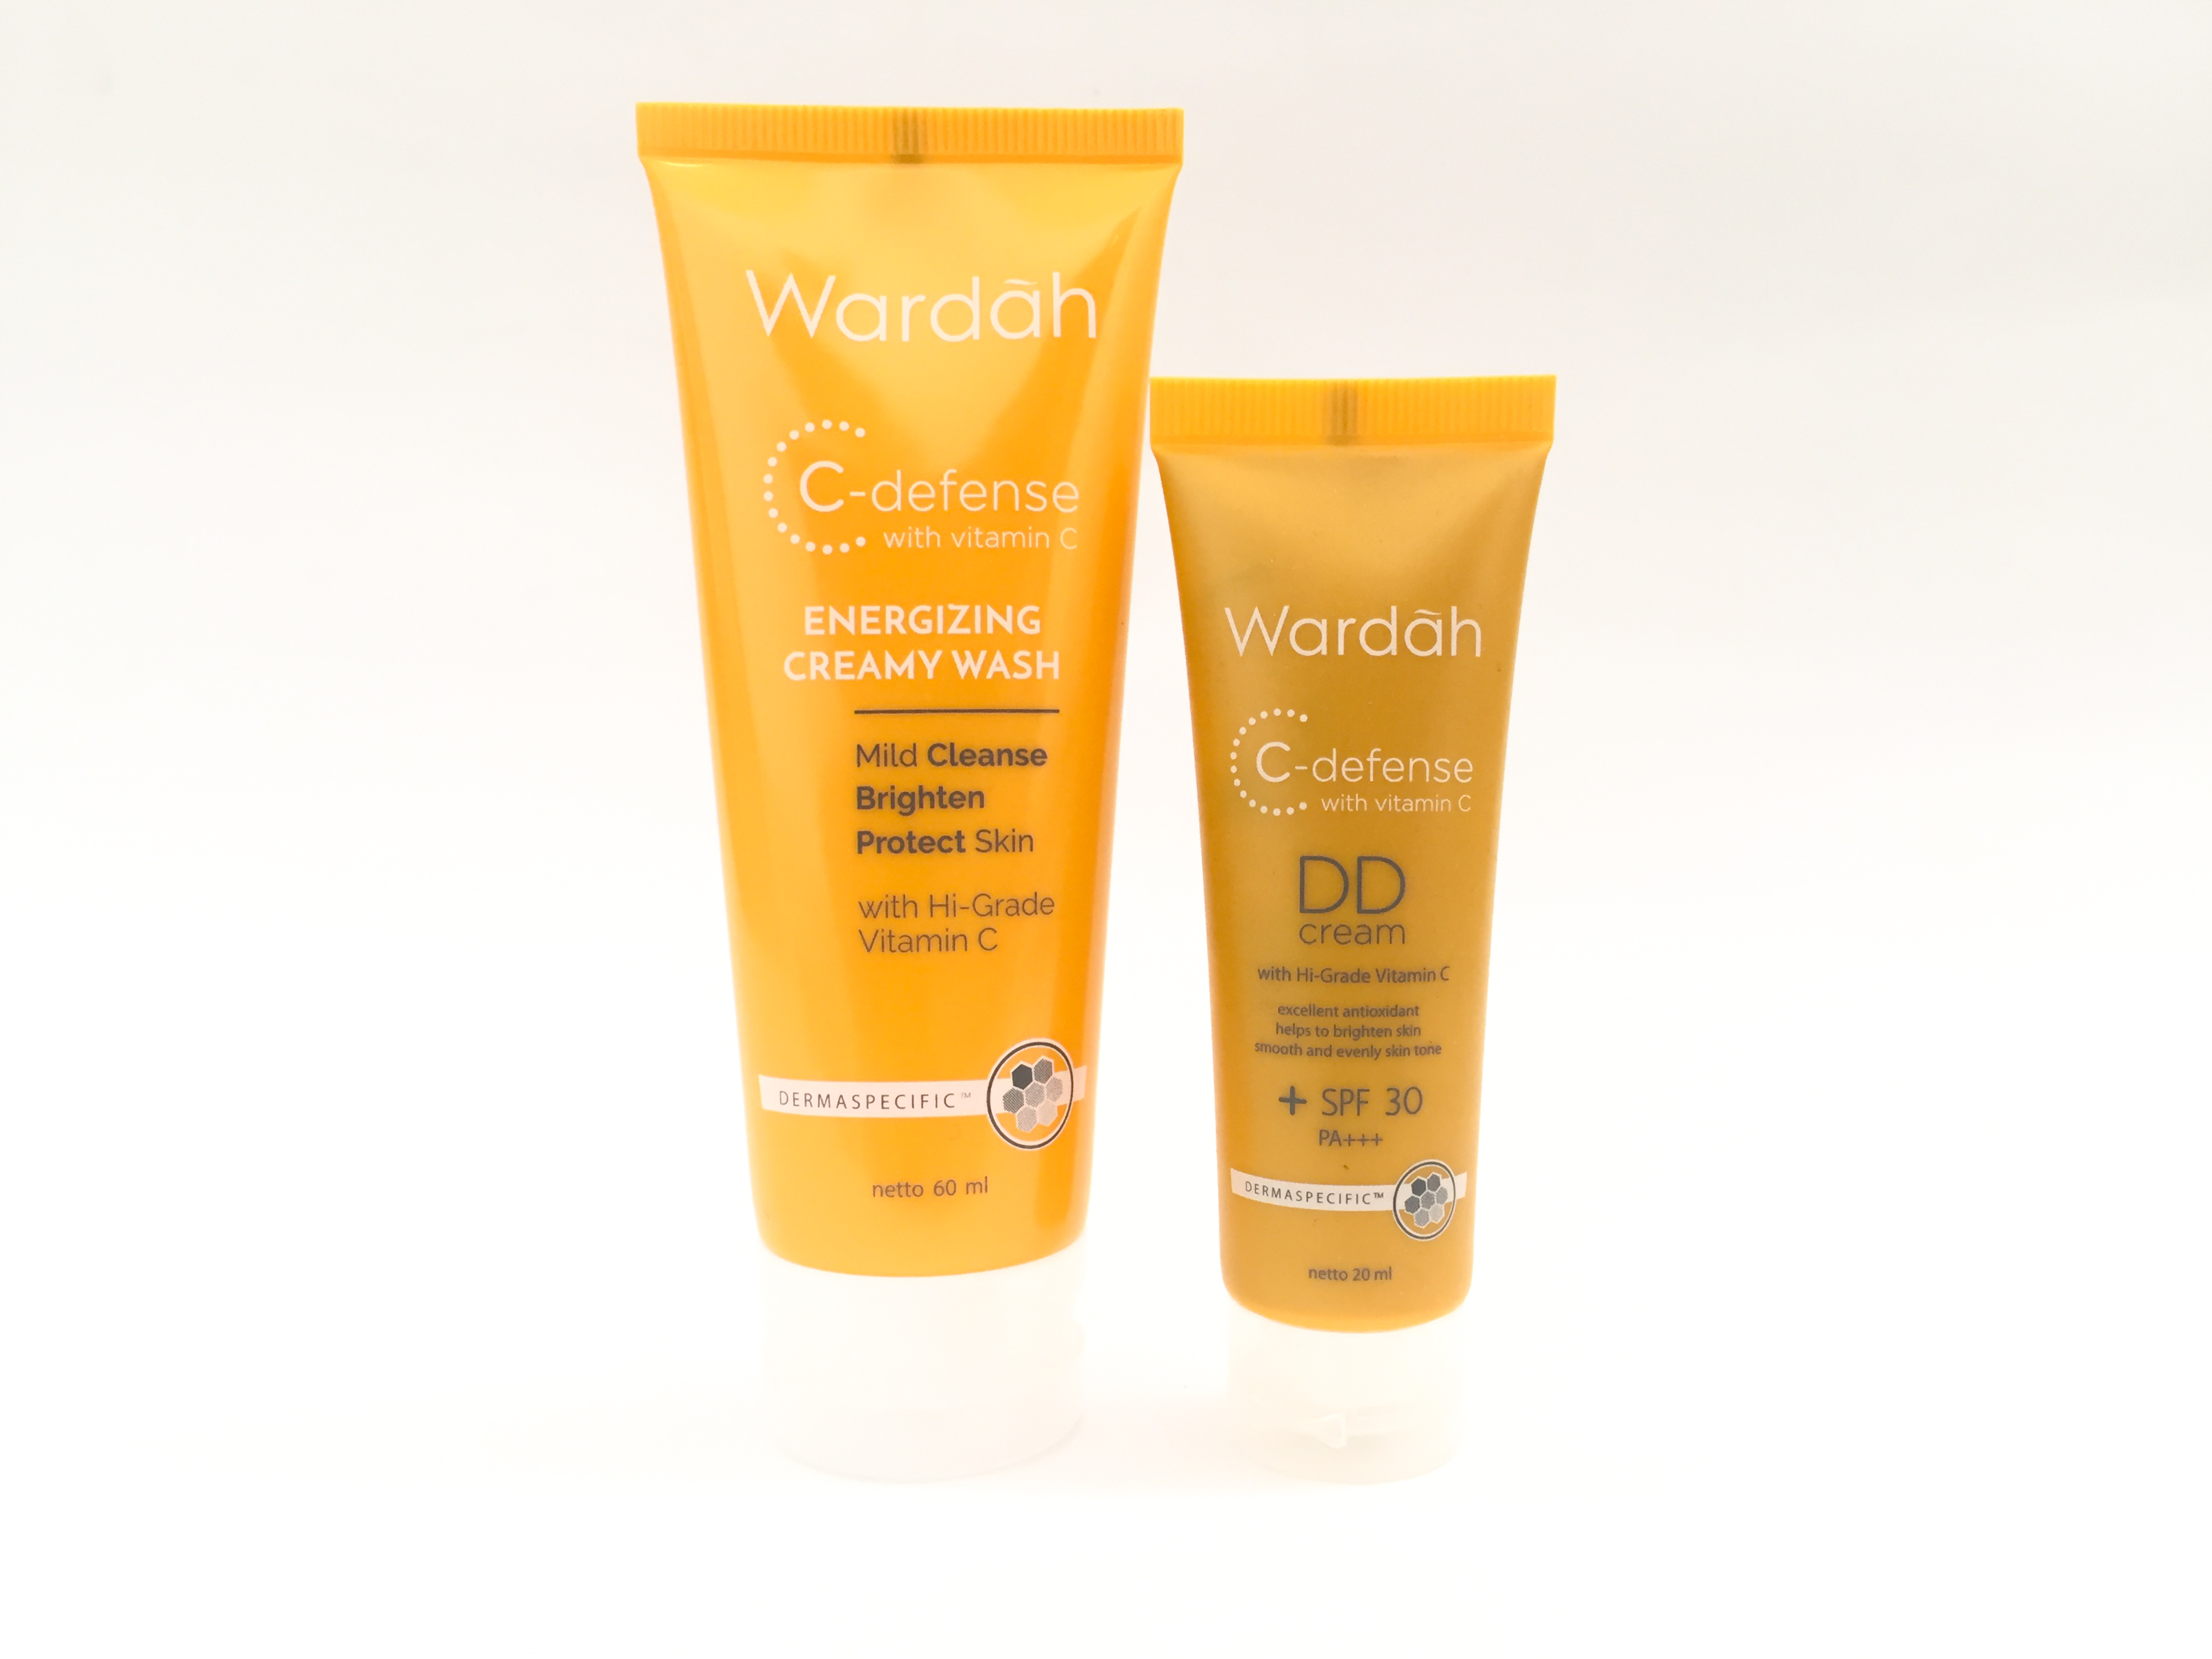 Review Wardah C Defense Dd Cream Energizing Creamy Washbeauty Journal